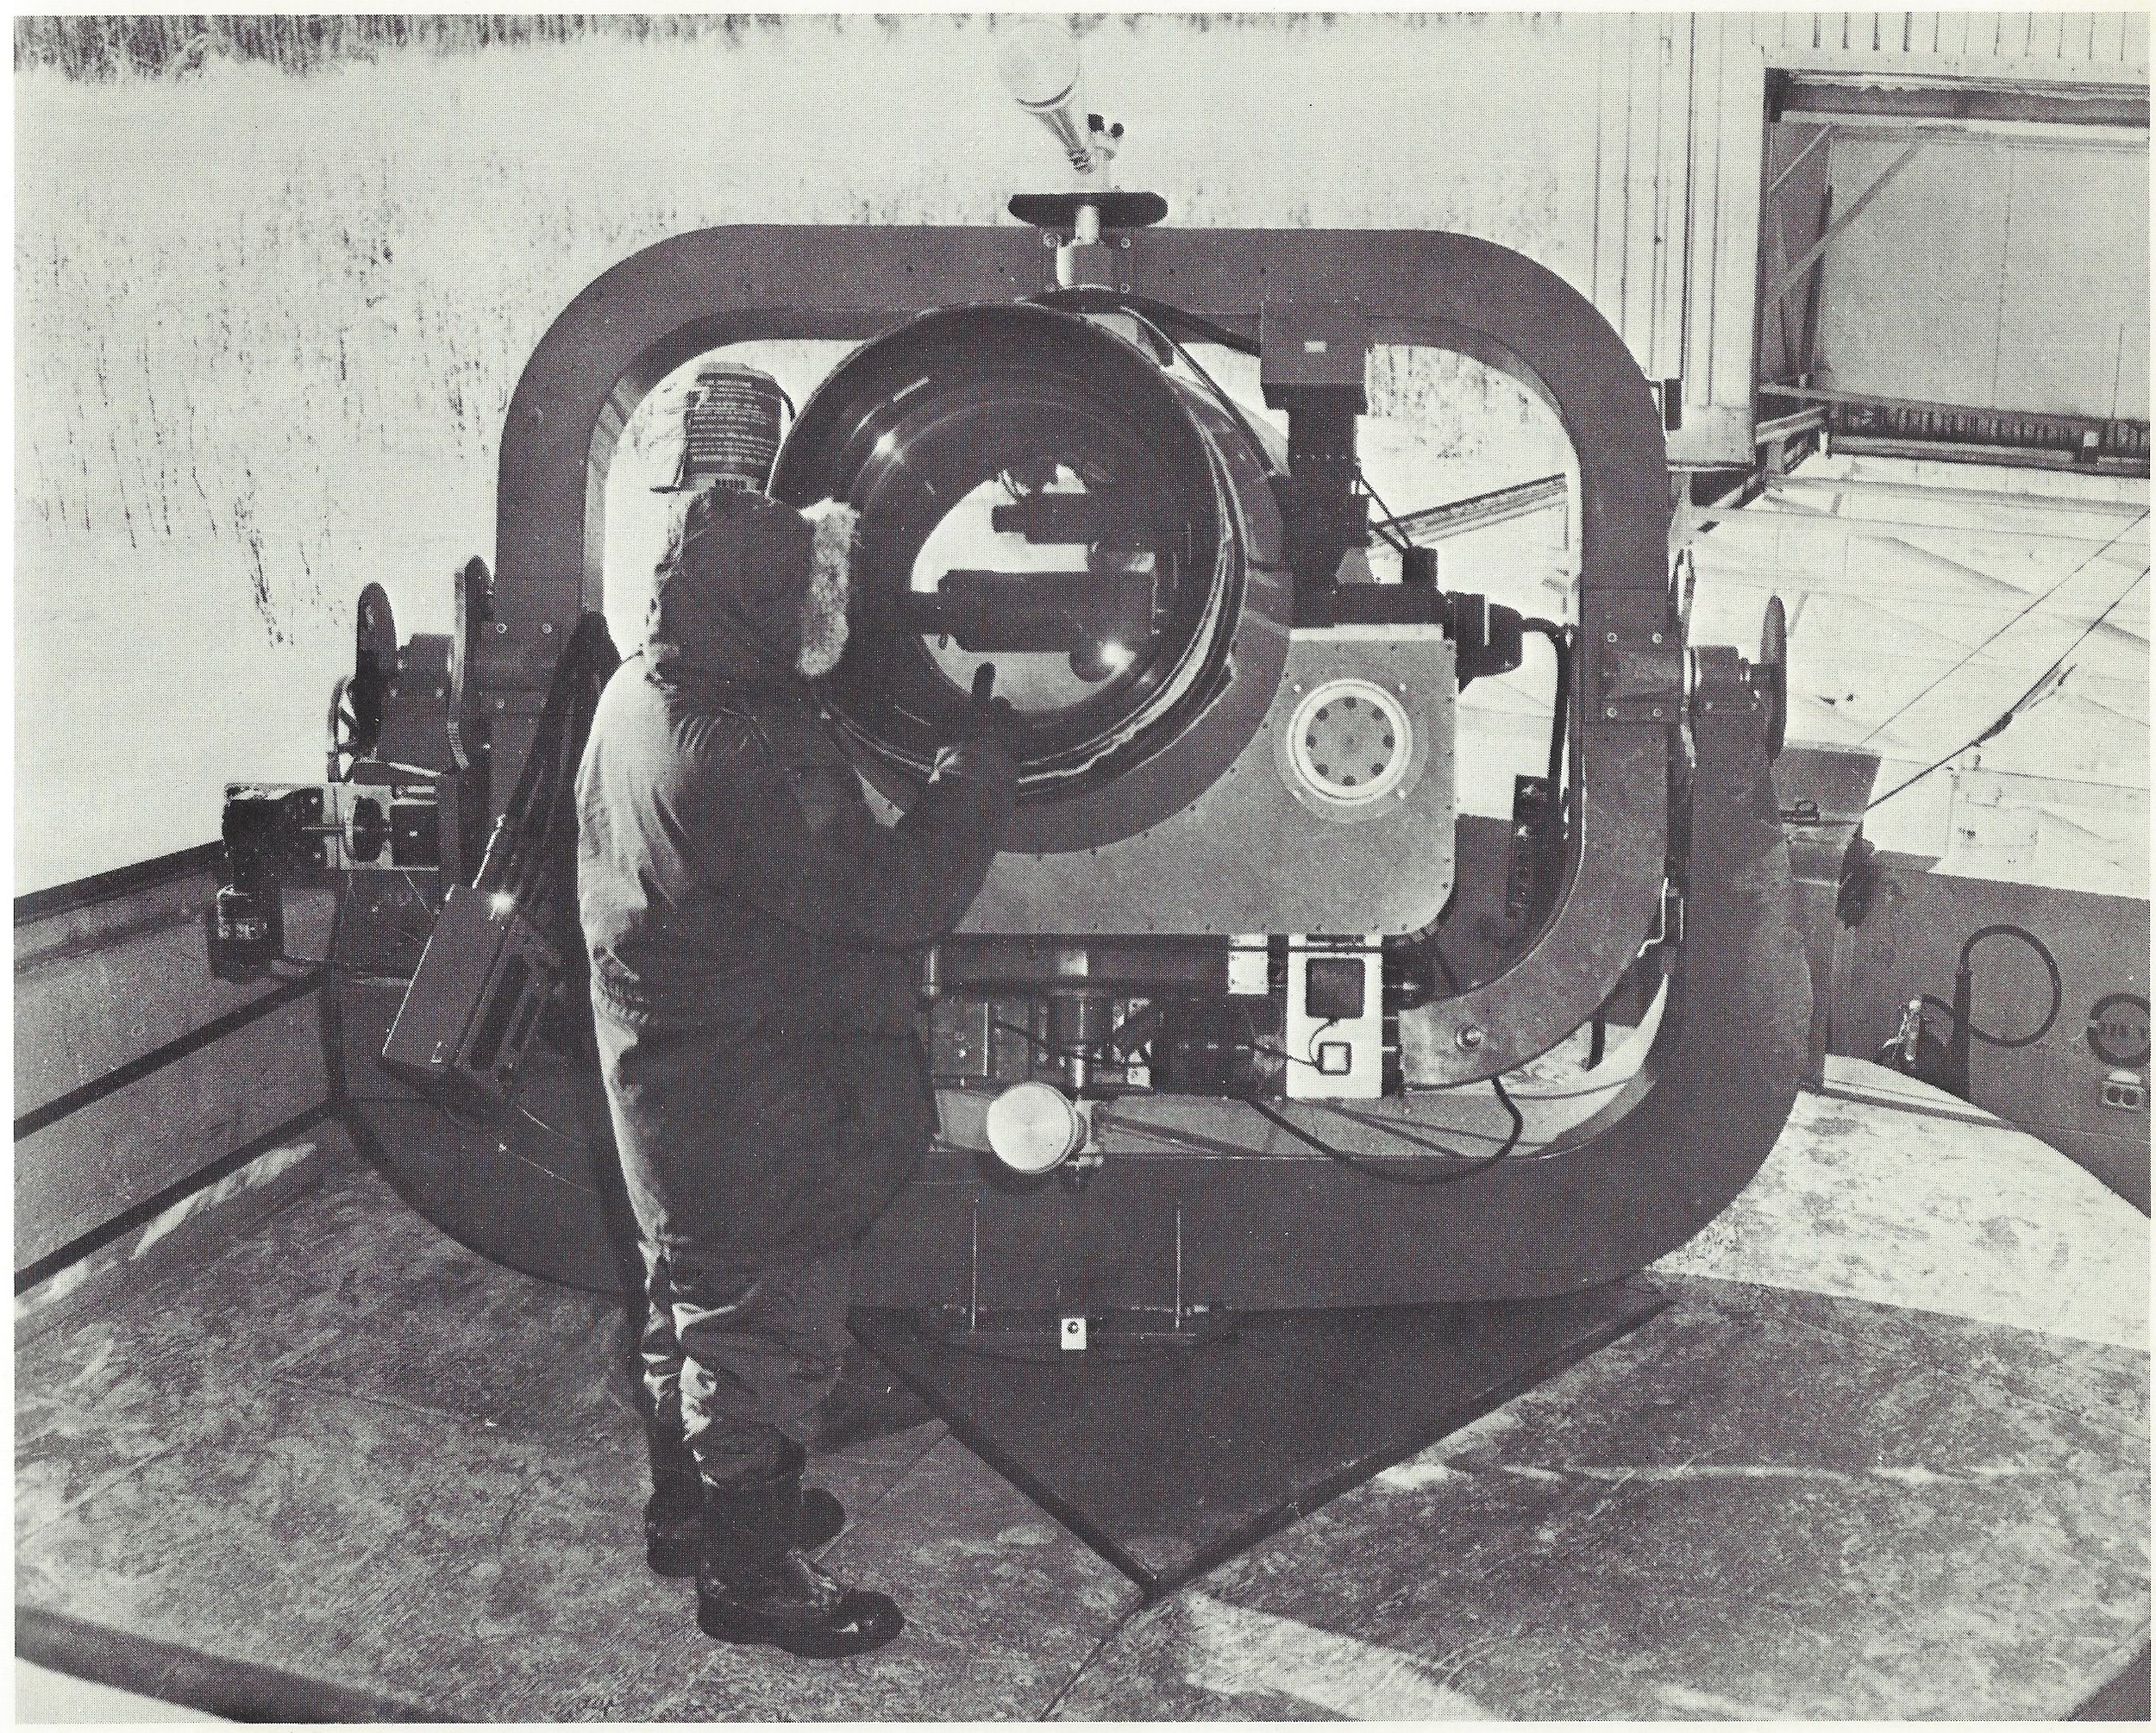 "Caption: ""SPACE BROWNIE - The most sensitive and precise satellite-tracking instrument in NORAD's satellite detection and tracking network is the Baker-Nunn camera, shown here. It can photograph light reflected from an object the size of a basketball out in space about 25,000 miles. This camera, at Cold Lake, Alberta, is operated by the Canadian Forces Air Defense Command. Others supplying data to the NORAD Space Defense Center in Colorado are operated by the U.S. Air Force and the Smithsonian Astrophysical Observatory. By identification and correlation of known star backgrounds in the Baker-Nunn photographs, a satellite's position can be determined with great precision."""